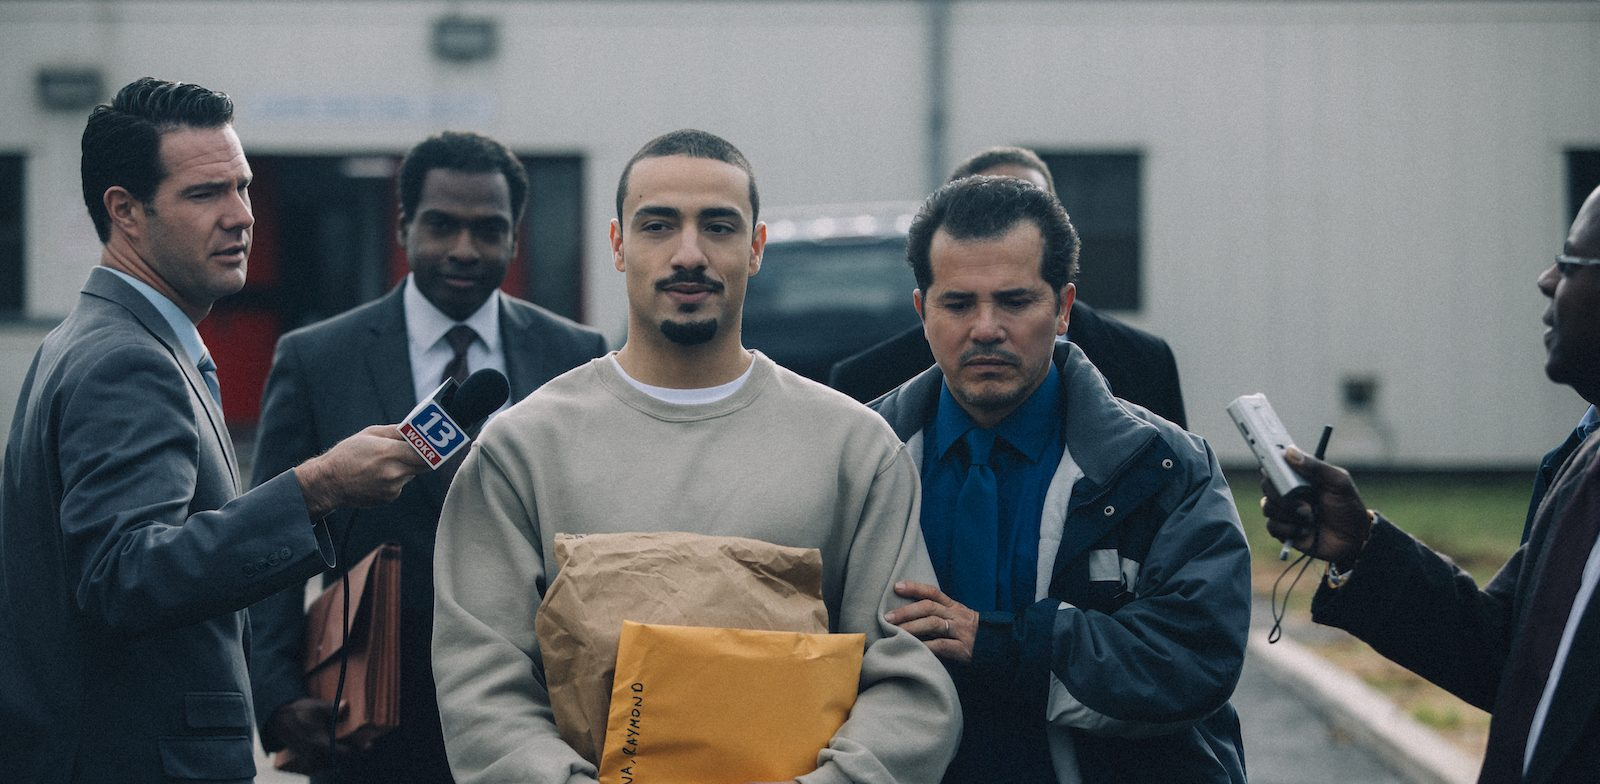 Ava DuVernay's Central Park Five Series Starring John Leguizamo Gets a Powerful First Trailer